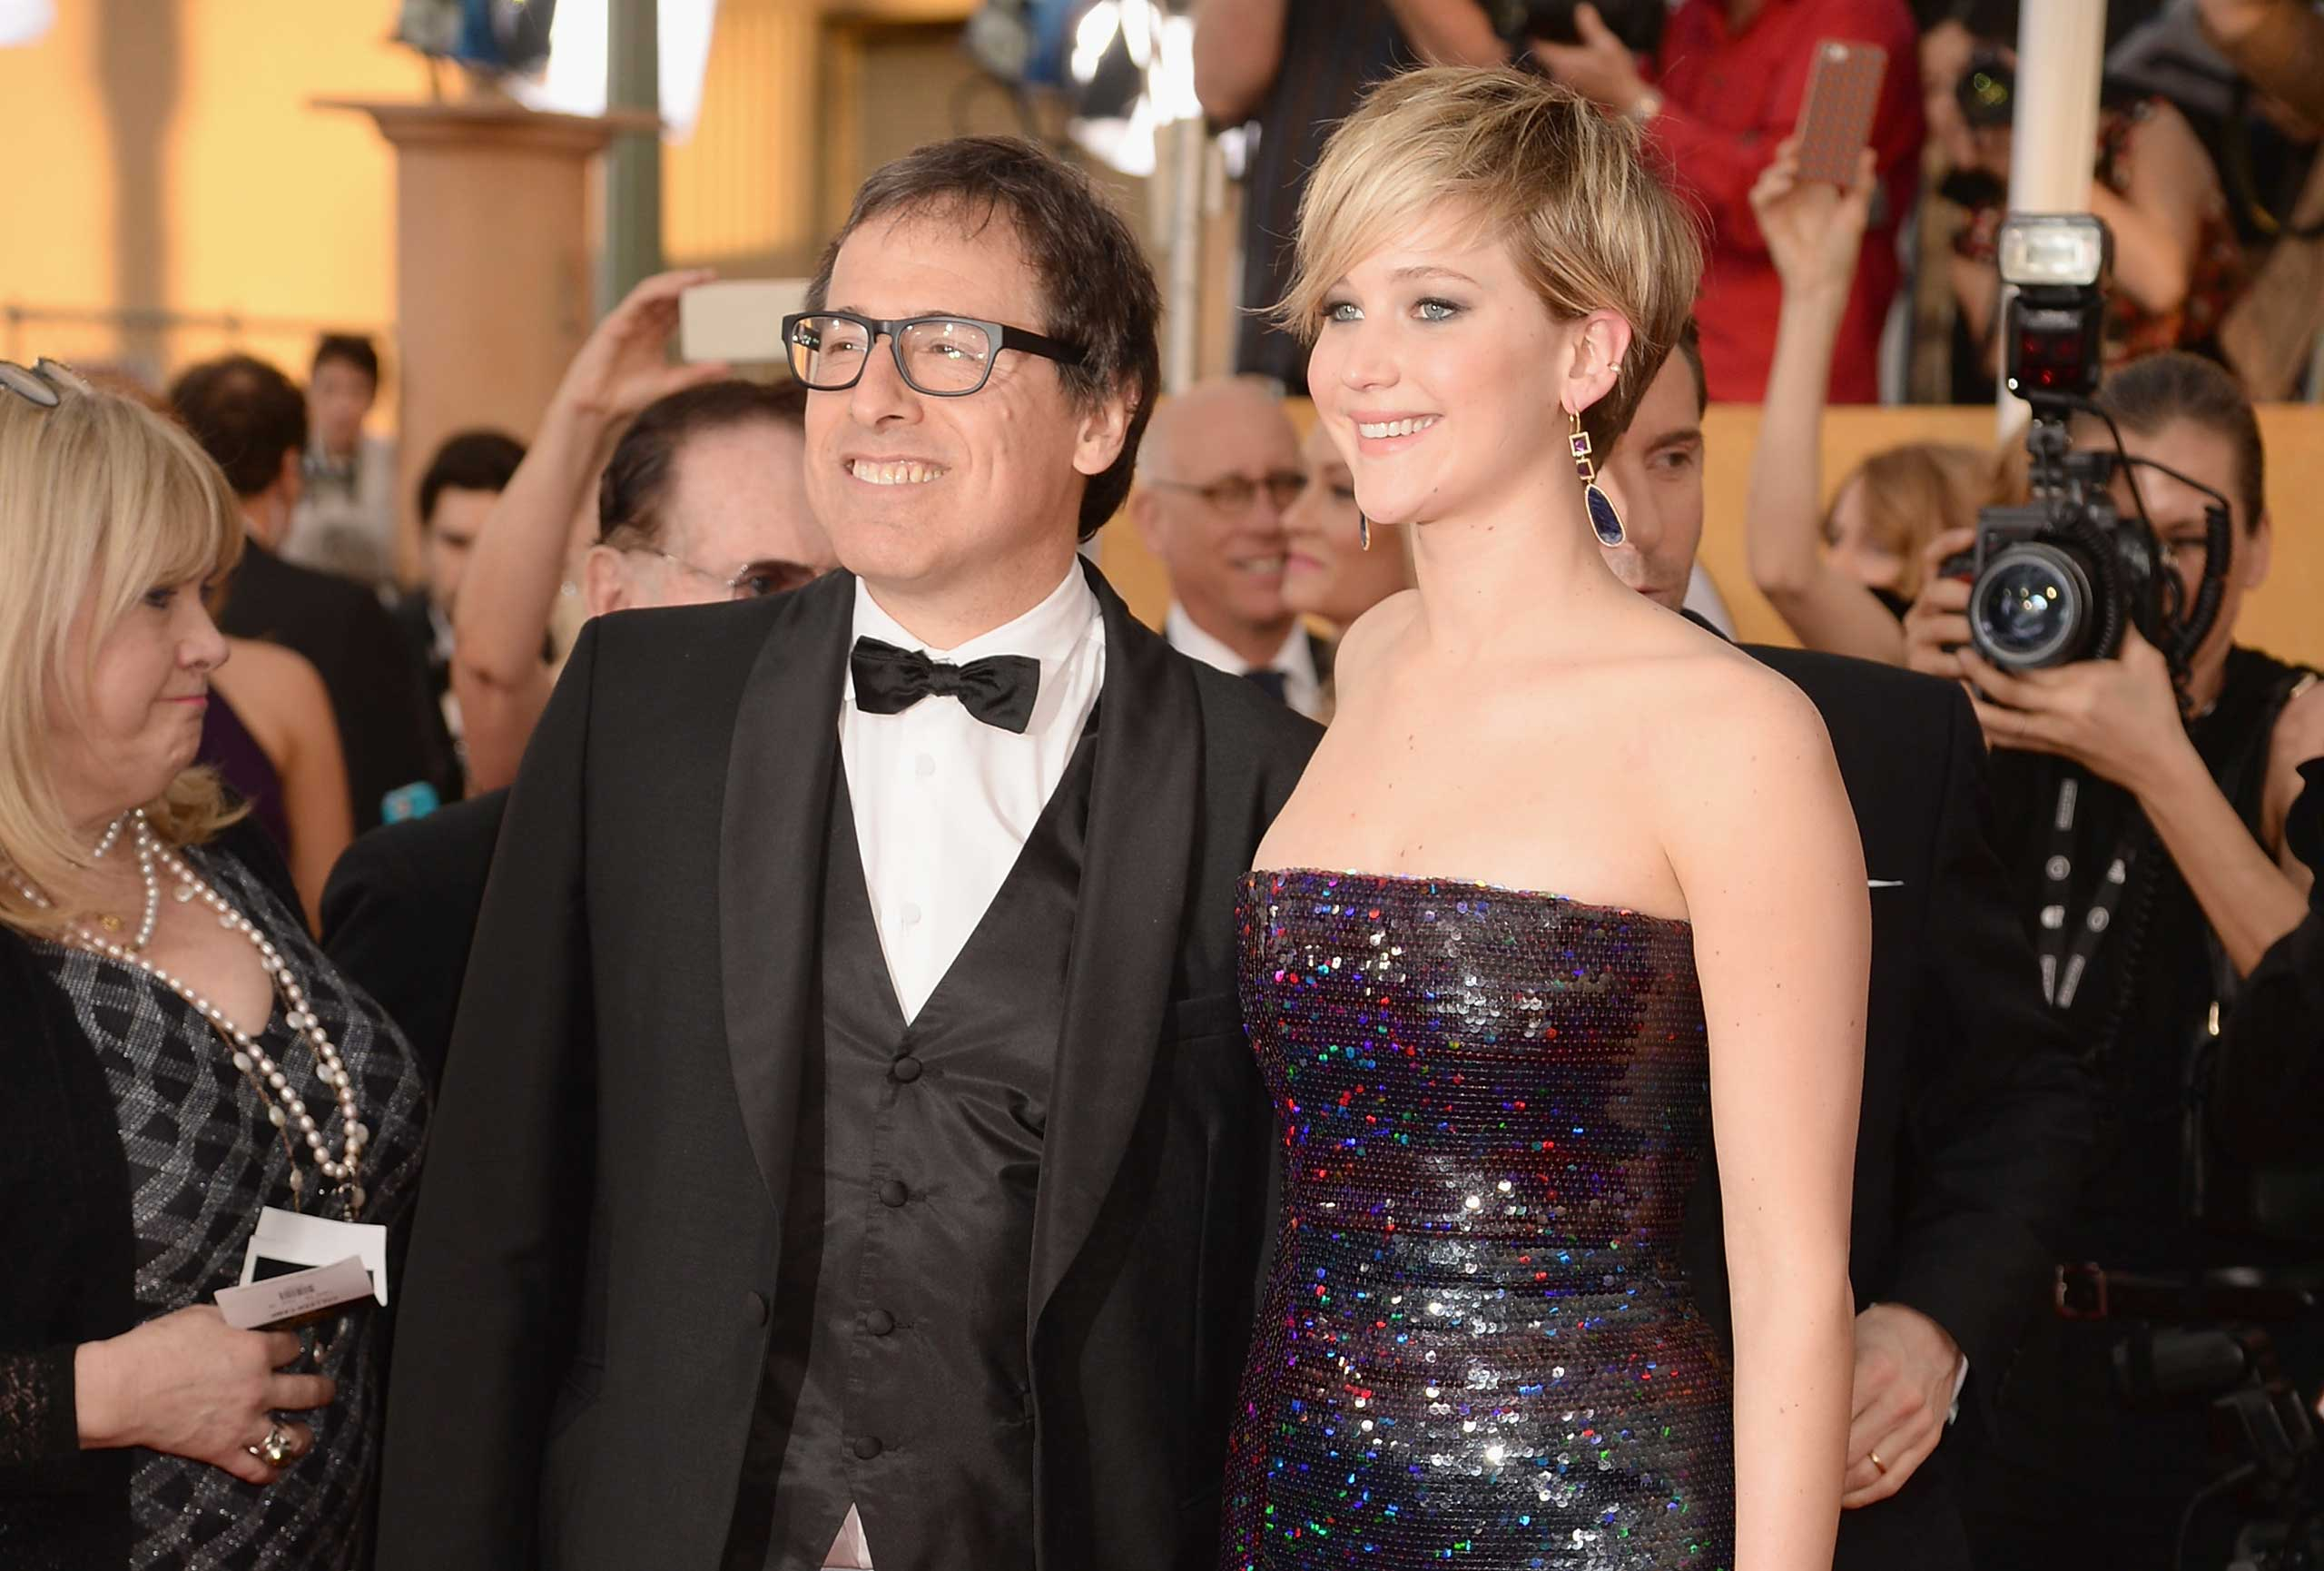 Director David O. Russell and Jennifer Lawrence at the 20th Annual Screen Actors Guild Awards on Jan. 18, 2014 in Los Angeles.